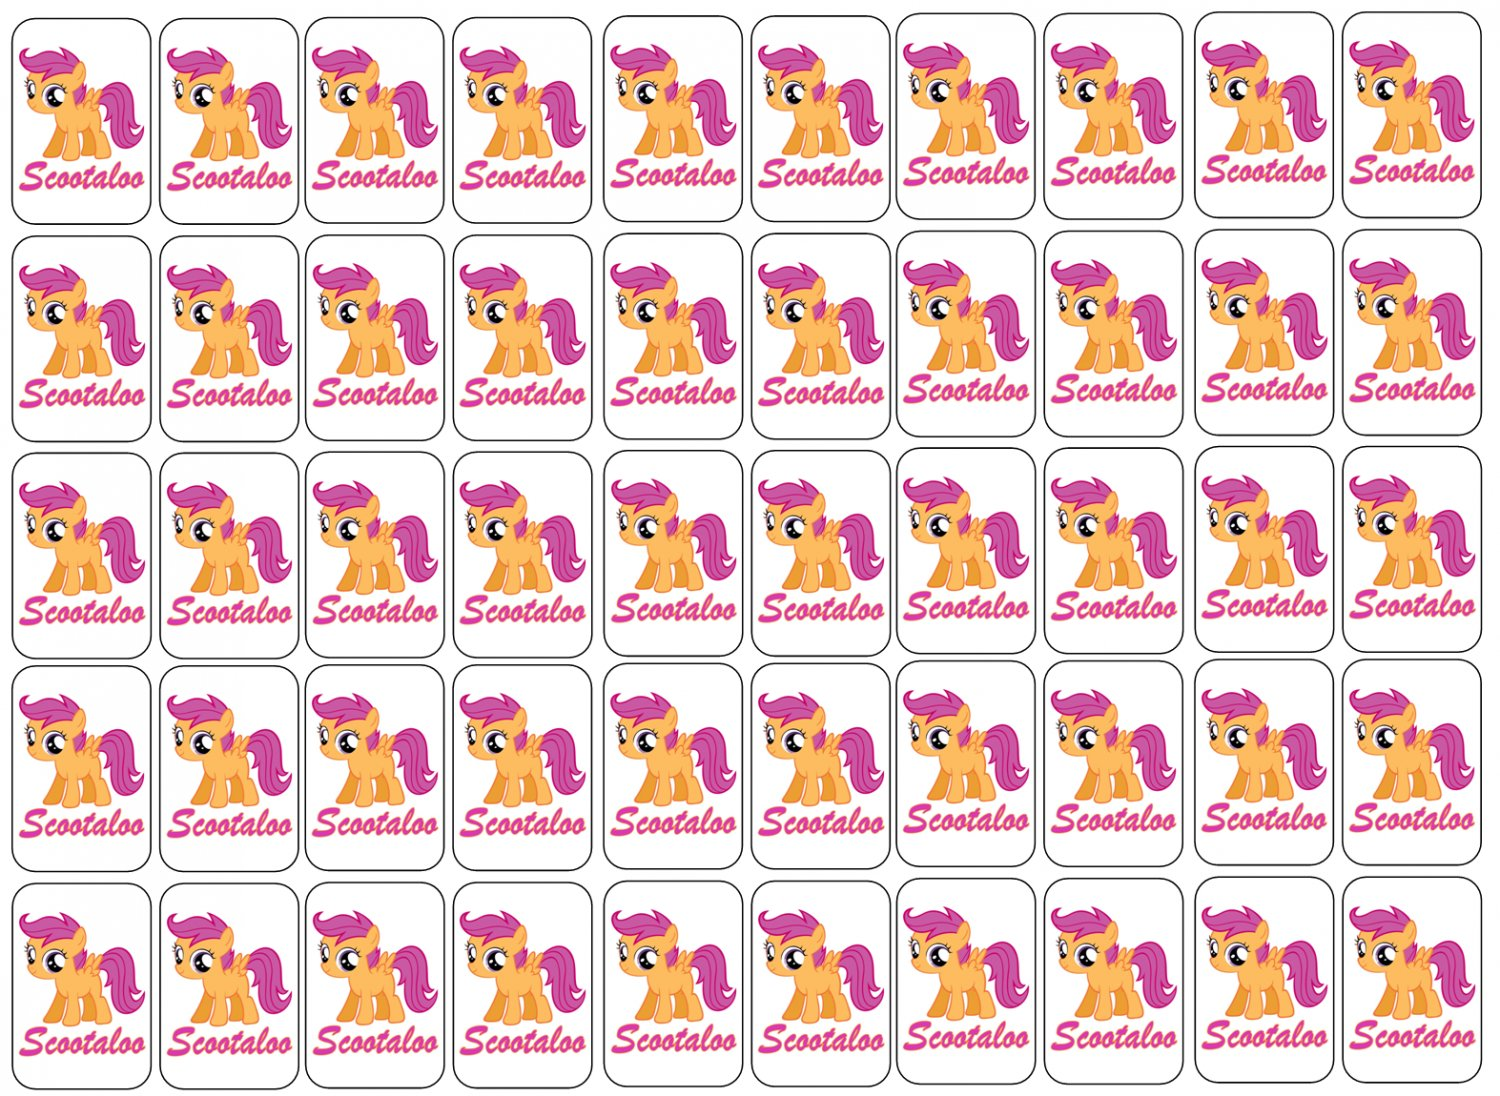 """50 My Little Pony Scootaloo Envelope Seals / Labels / Stickers, 1"""" by 1.5"""""""